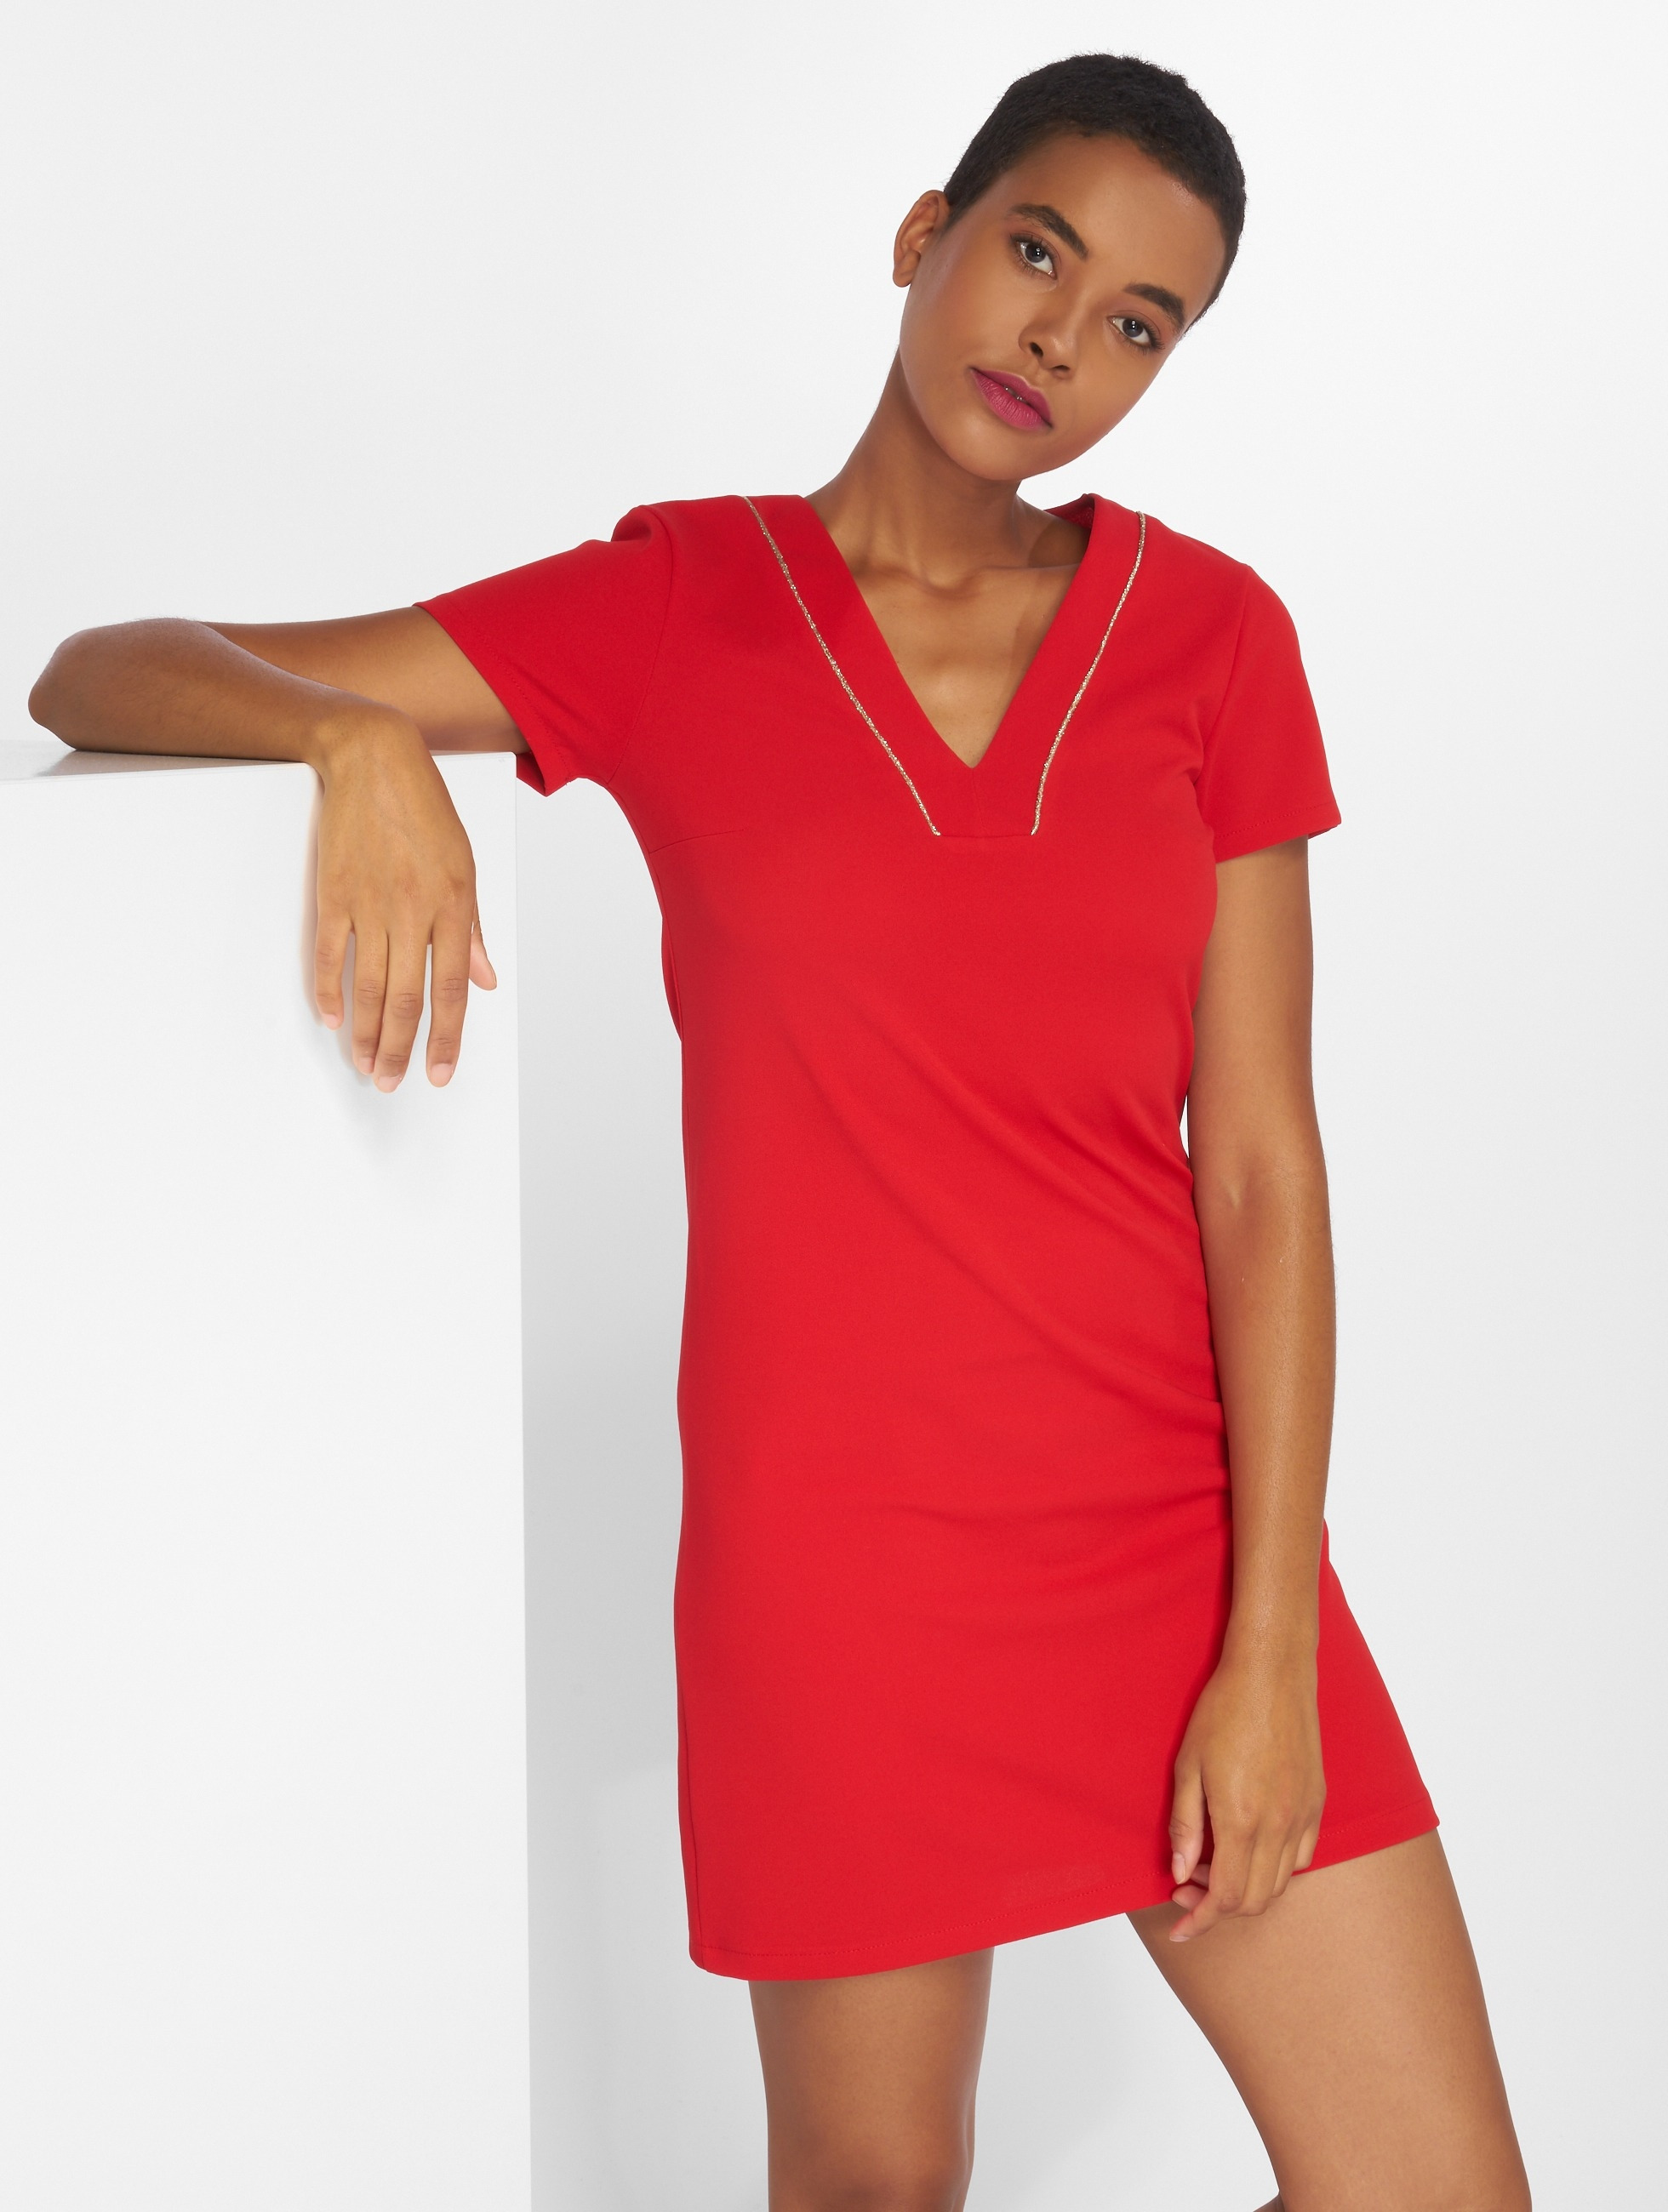 Charming Girl | Ulis rouge Femme Robe